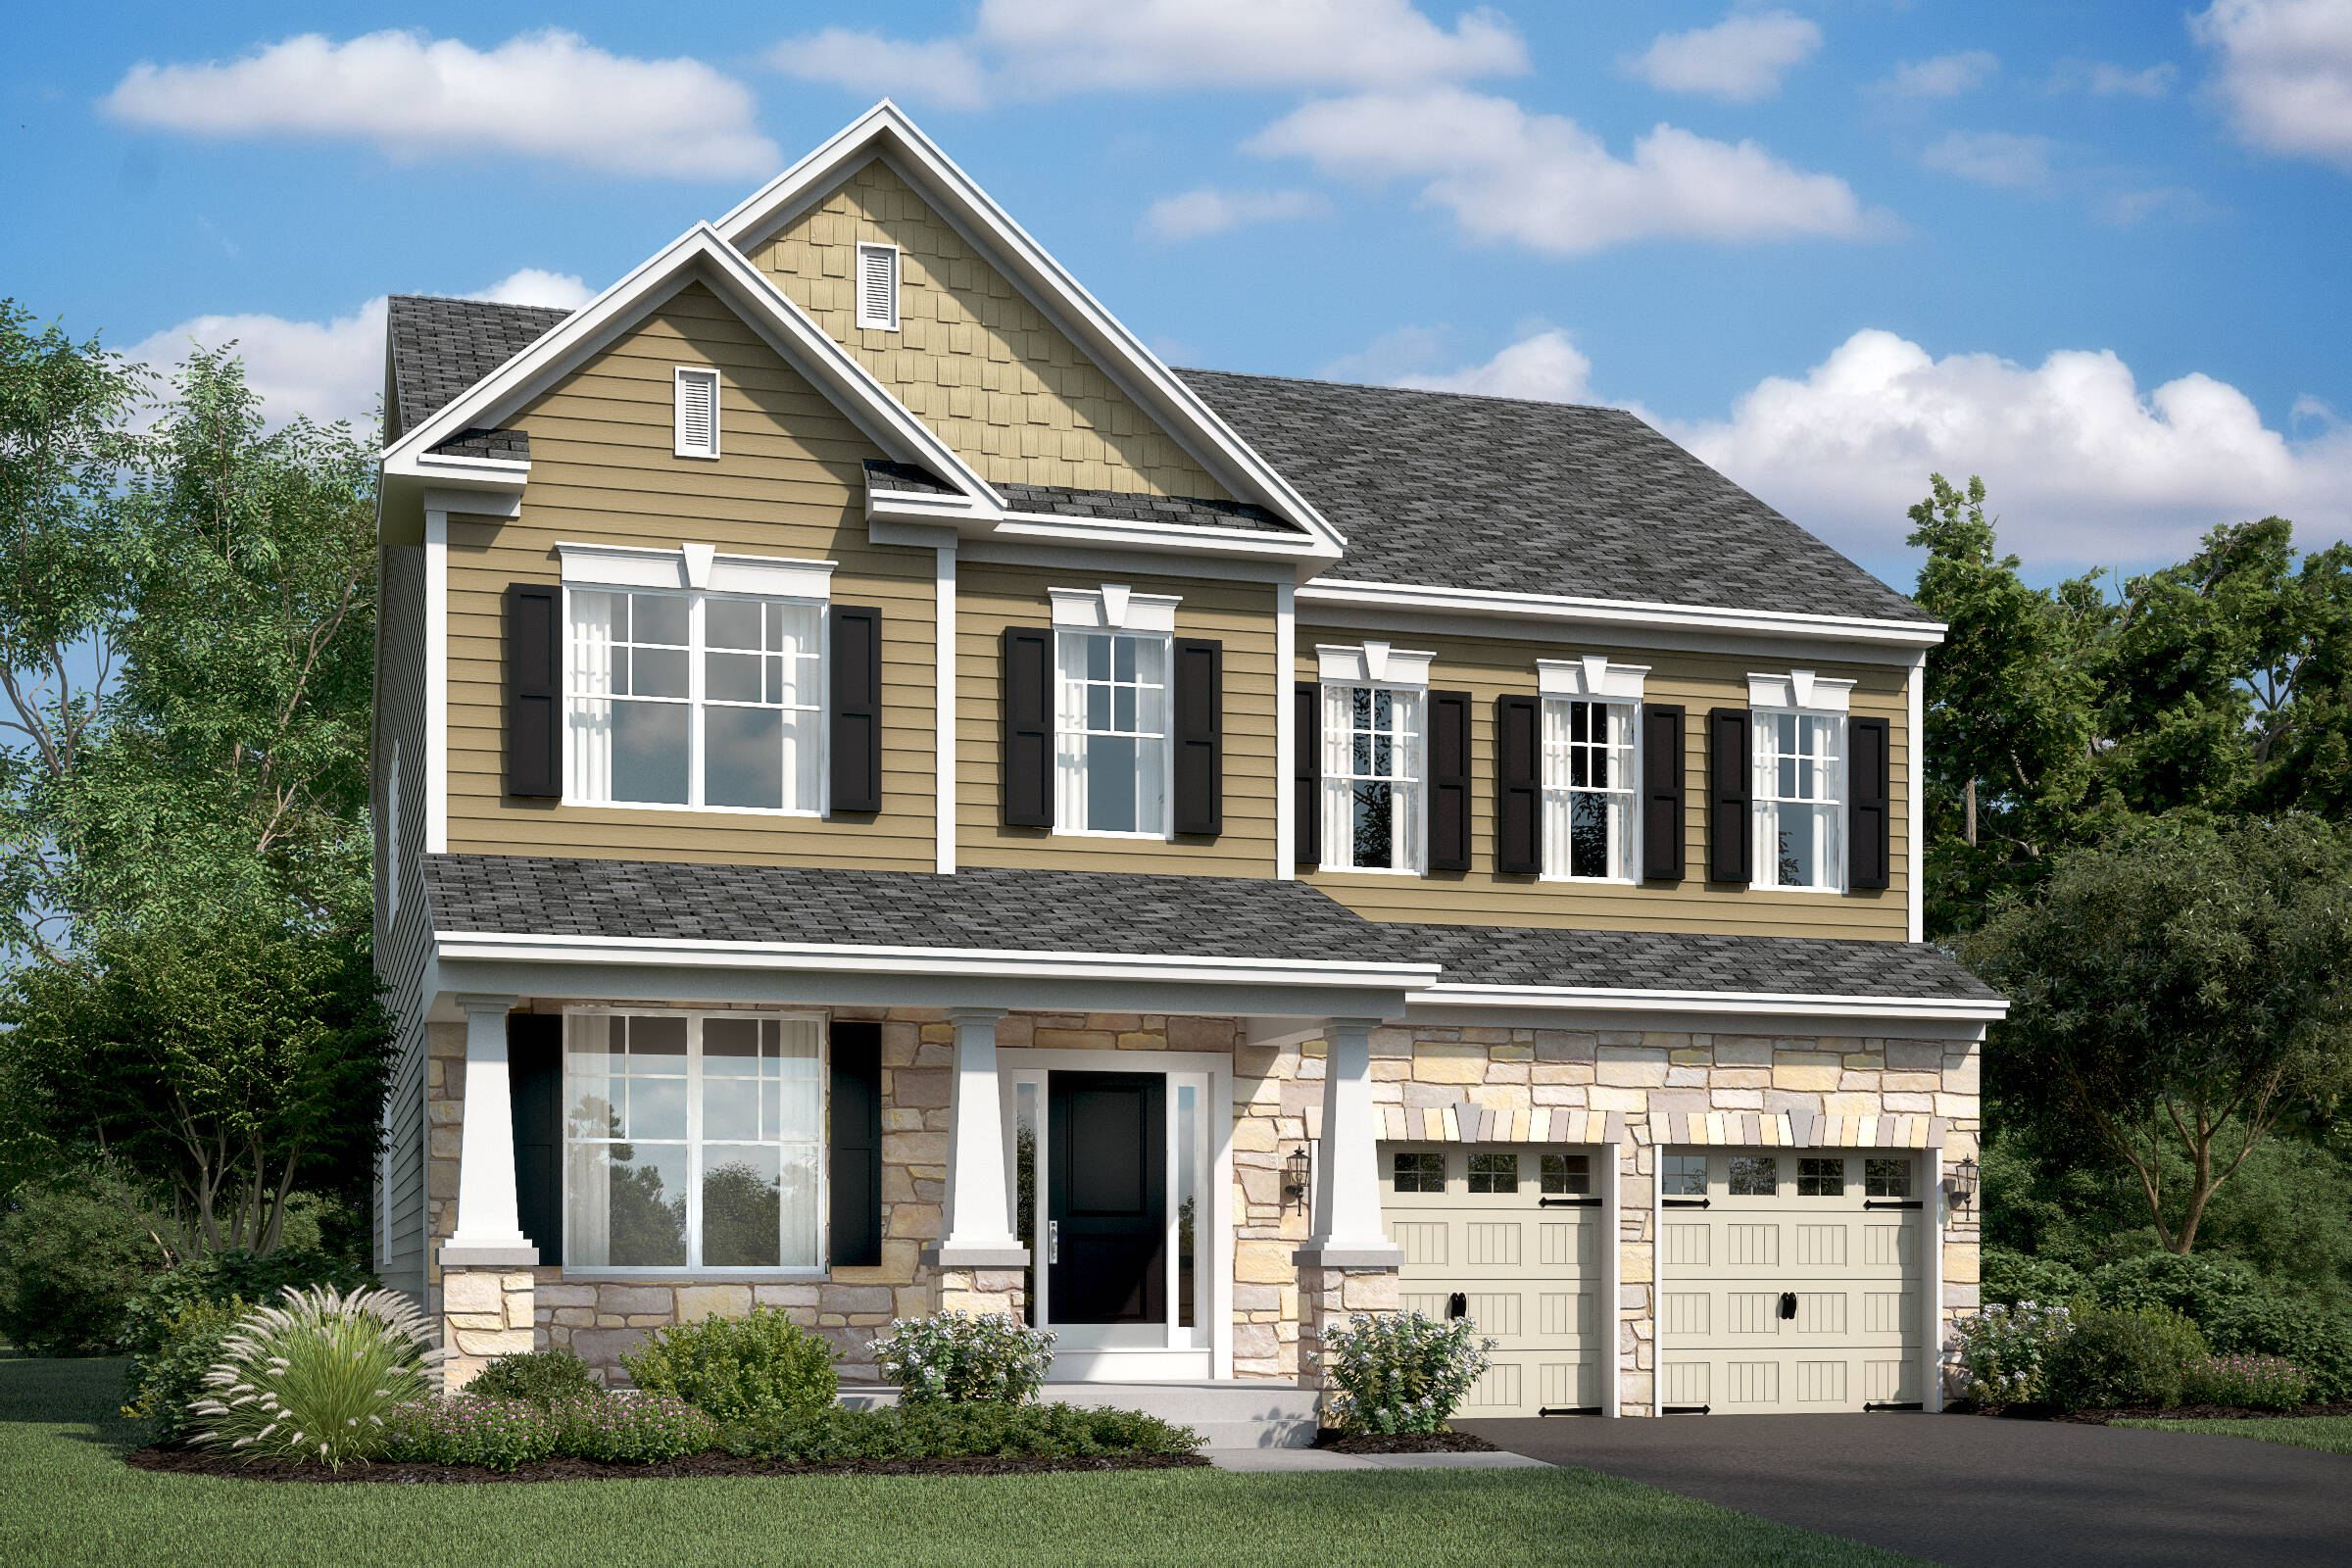 callahan-ii-bt-new-homes-at-eden-terrace-in-maryland